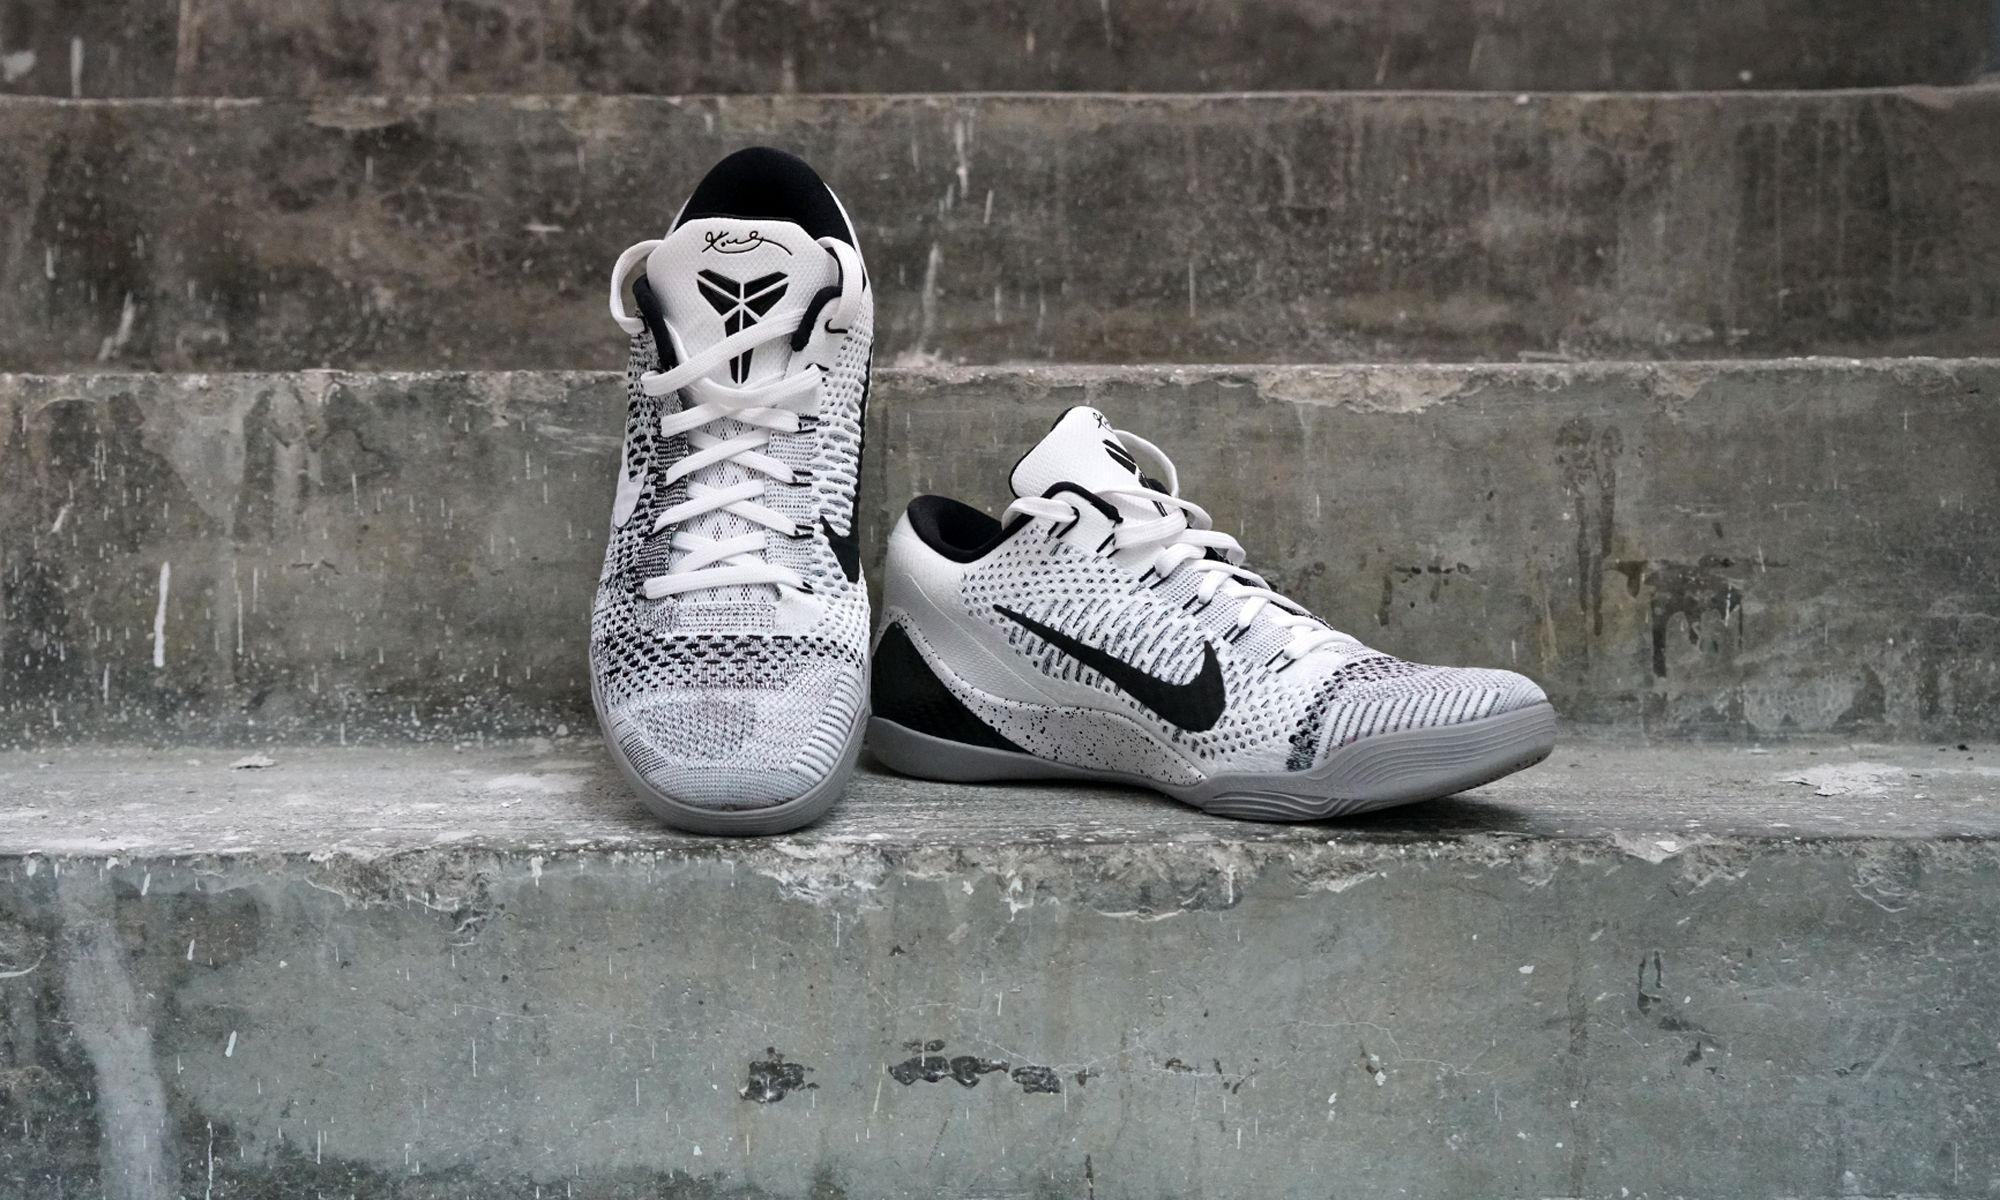 Nike Kobe IX Elite Low XDR